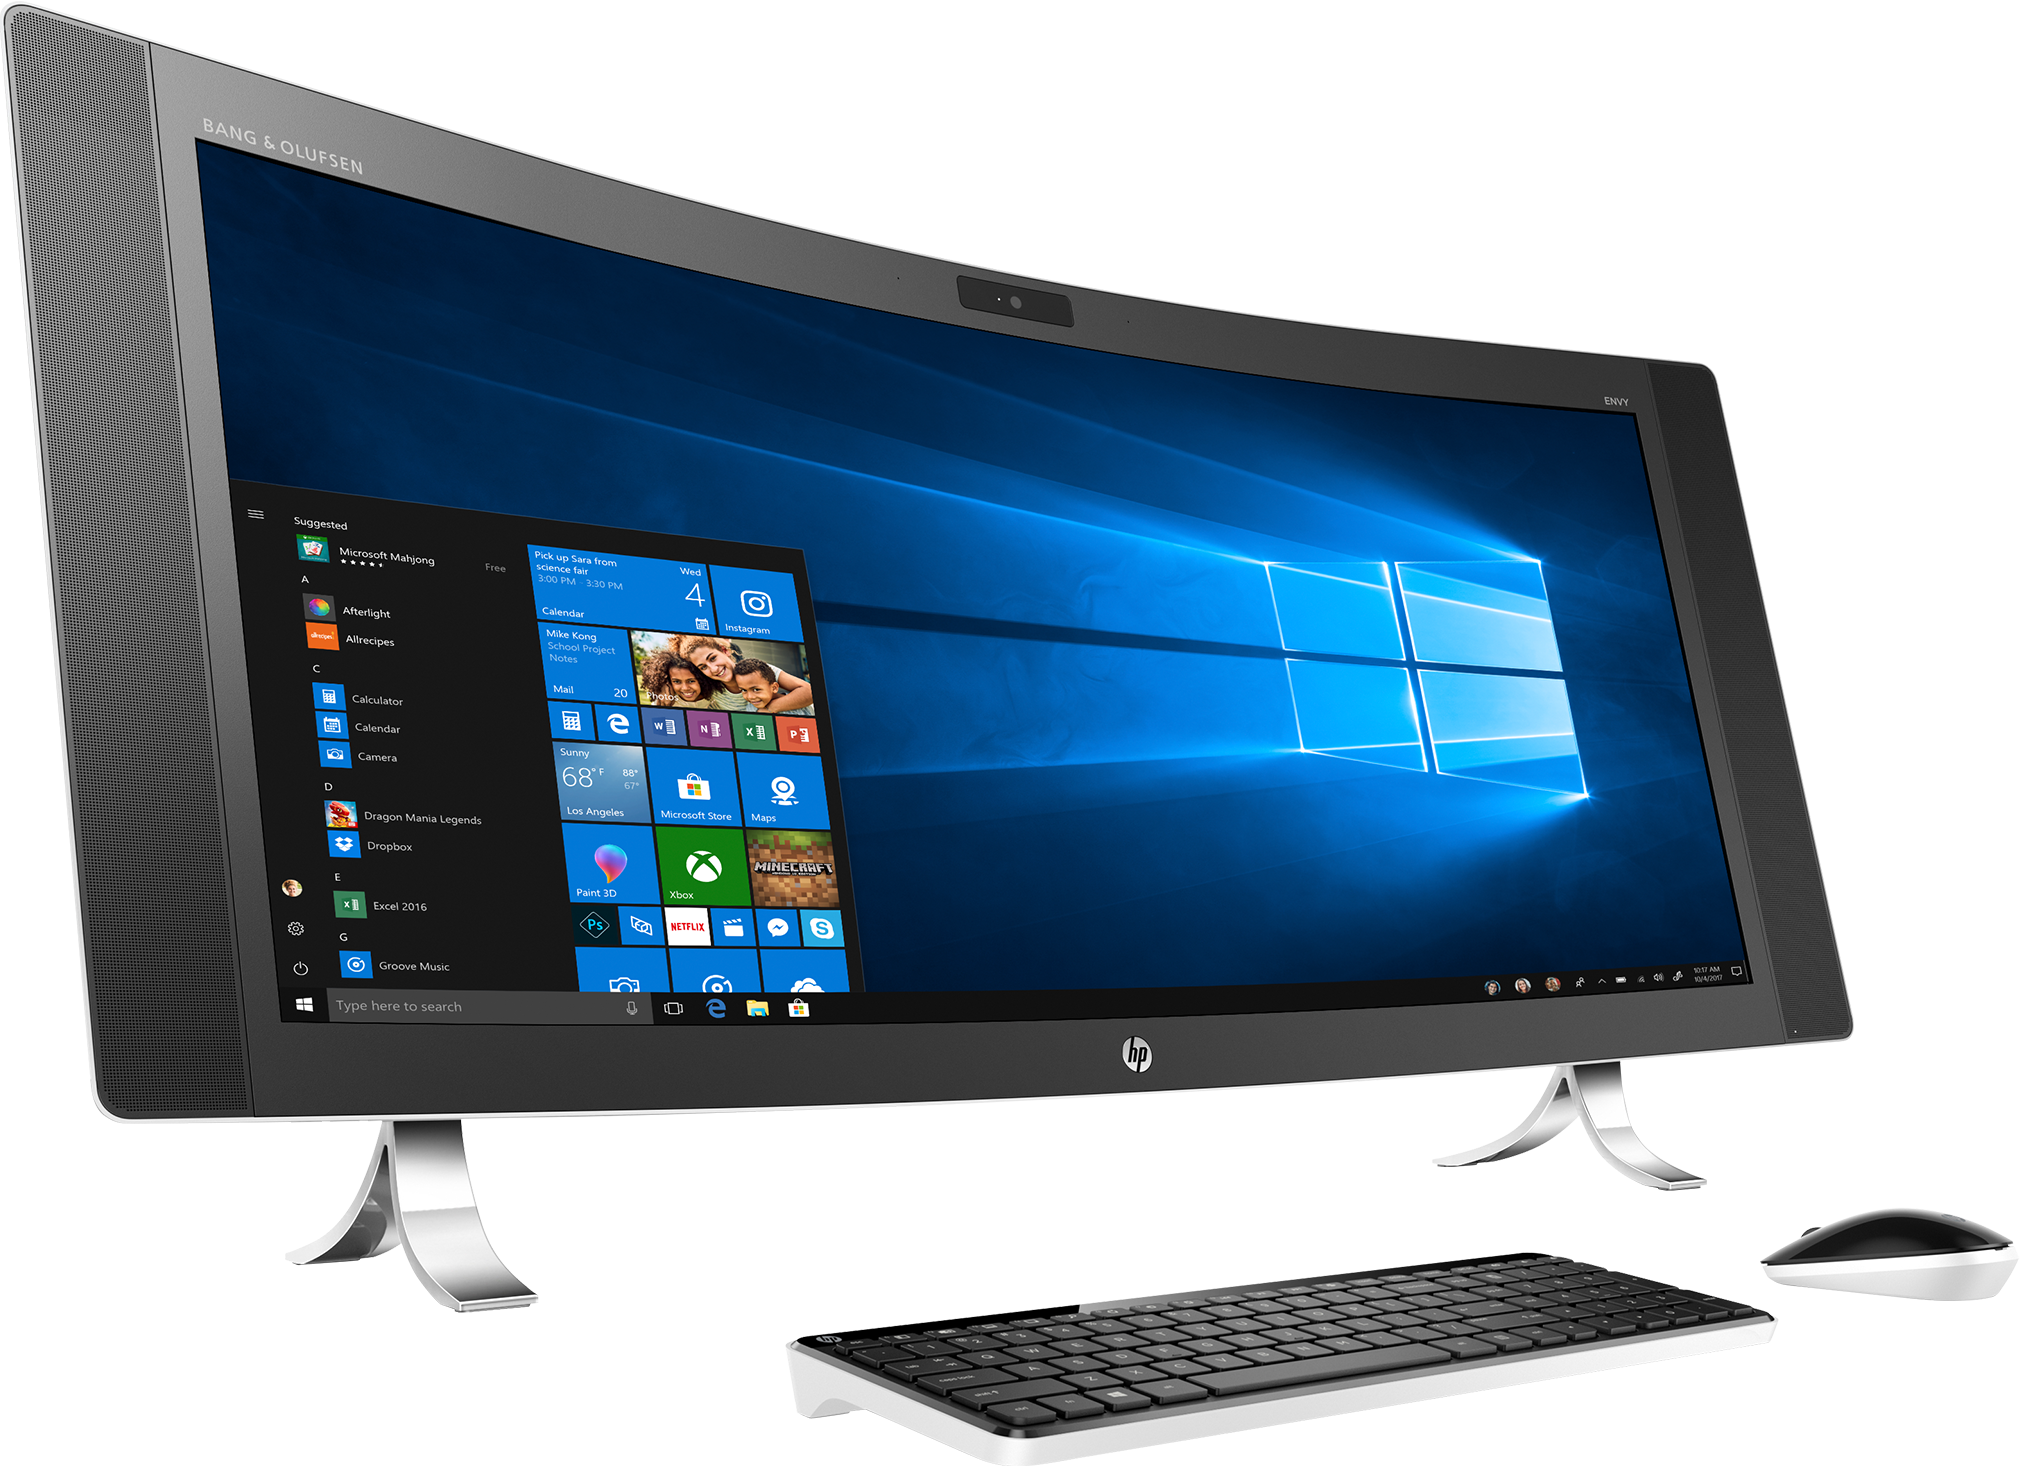 HP ENVY Curved 34-A051 Signature Edition All-in-One